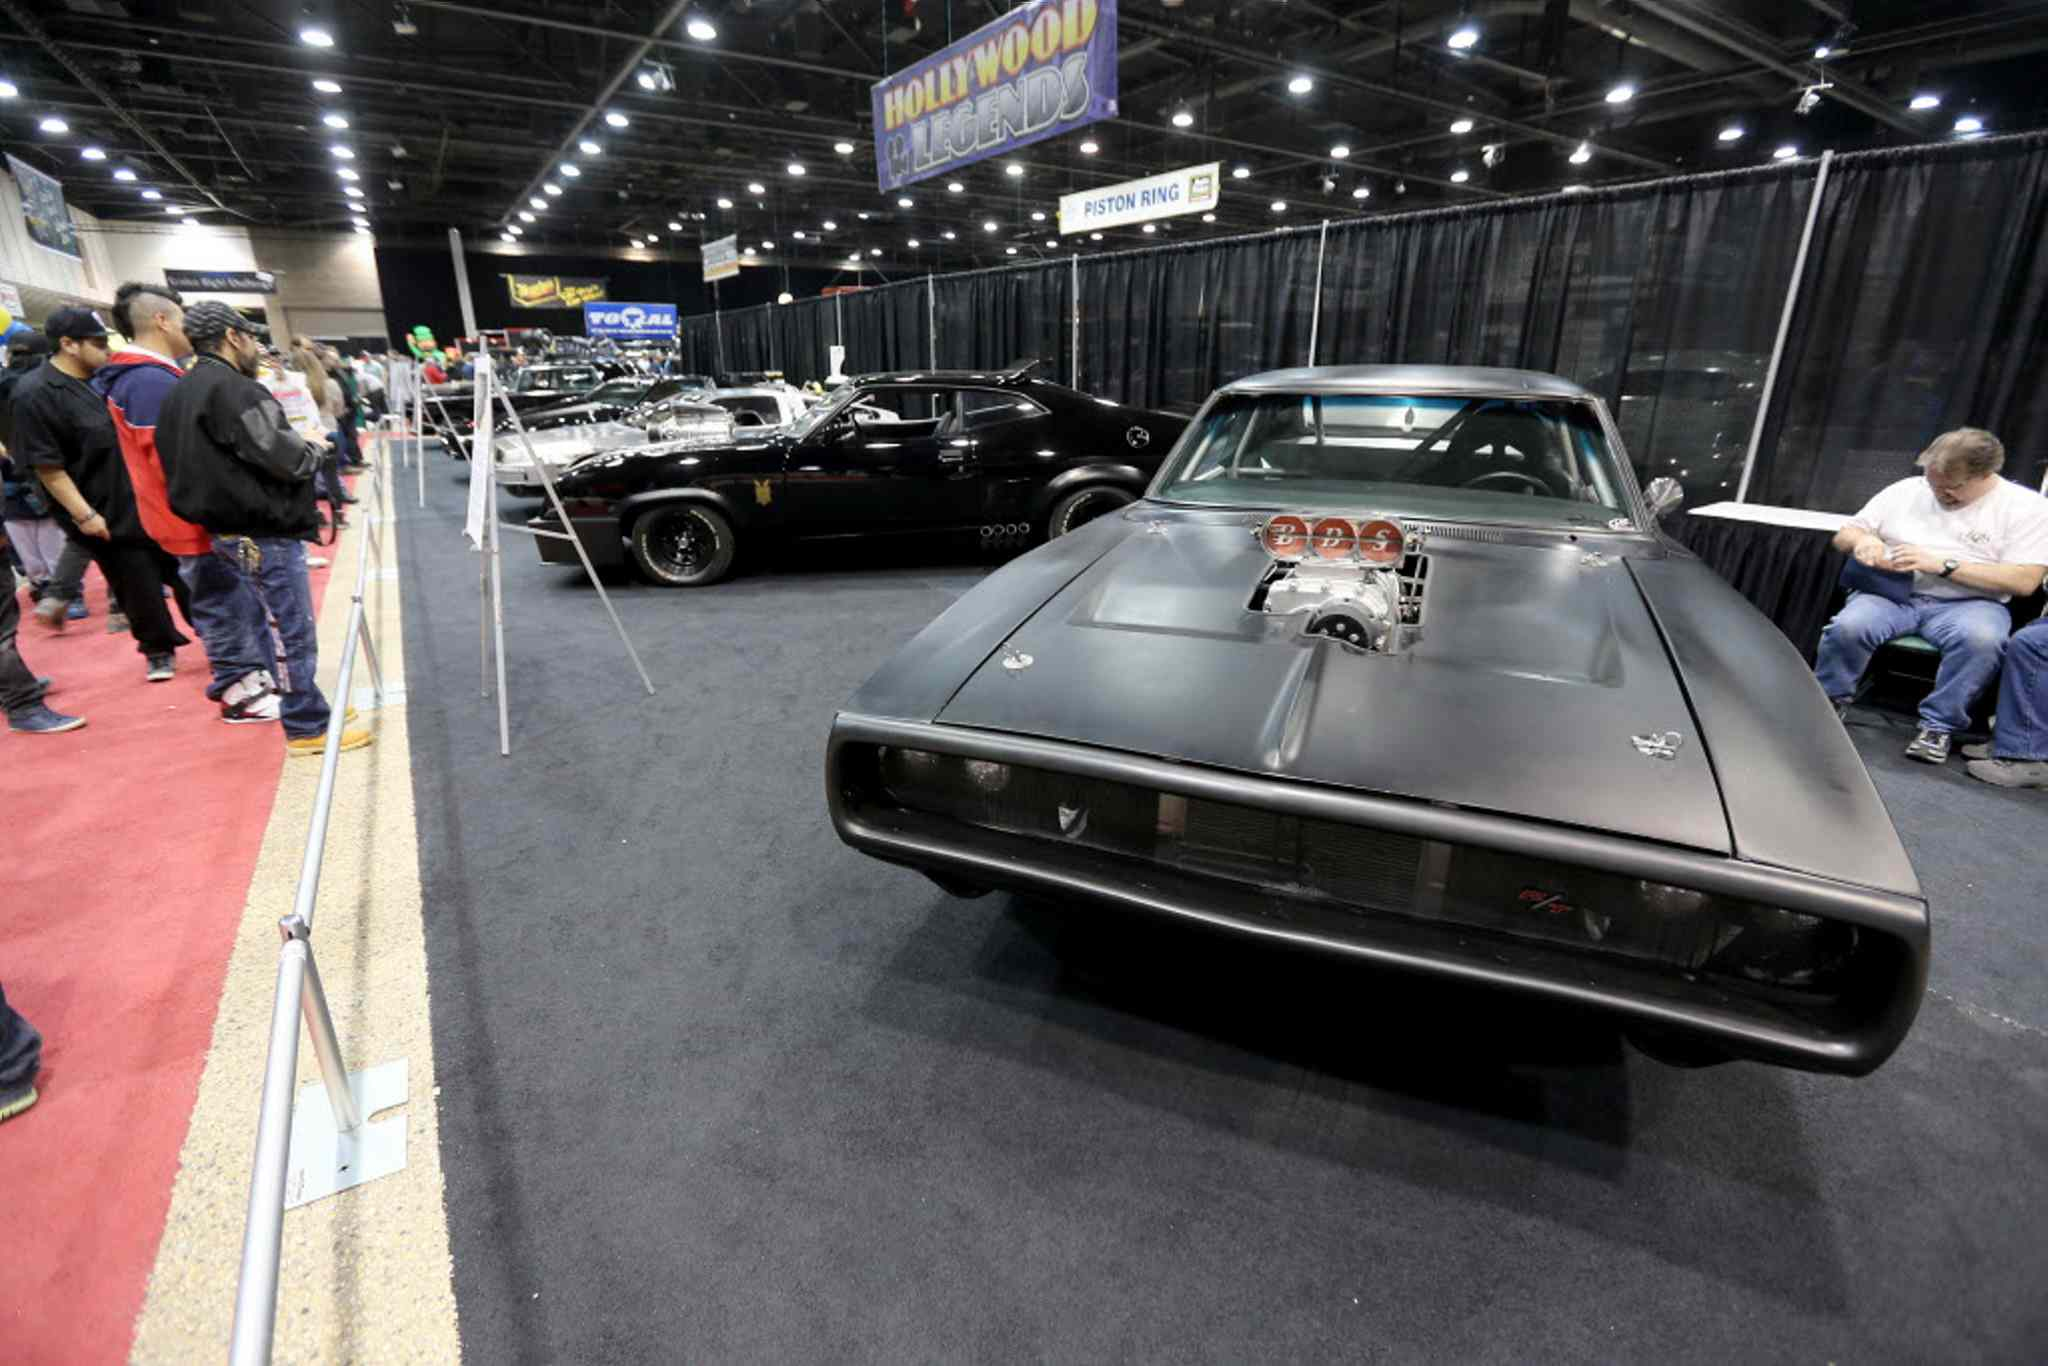 A Dodge Charger from the Fast and The Furious movie series at the World of Wheels Car show at the Convention Centre.